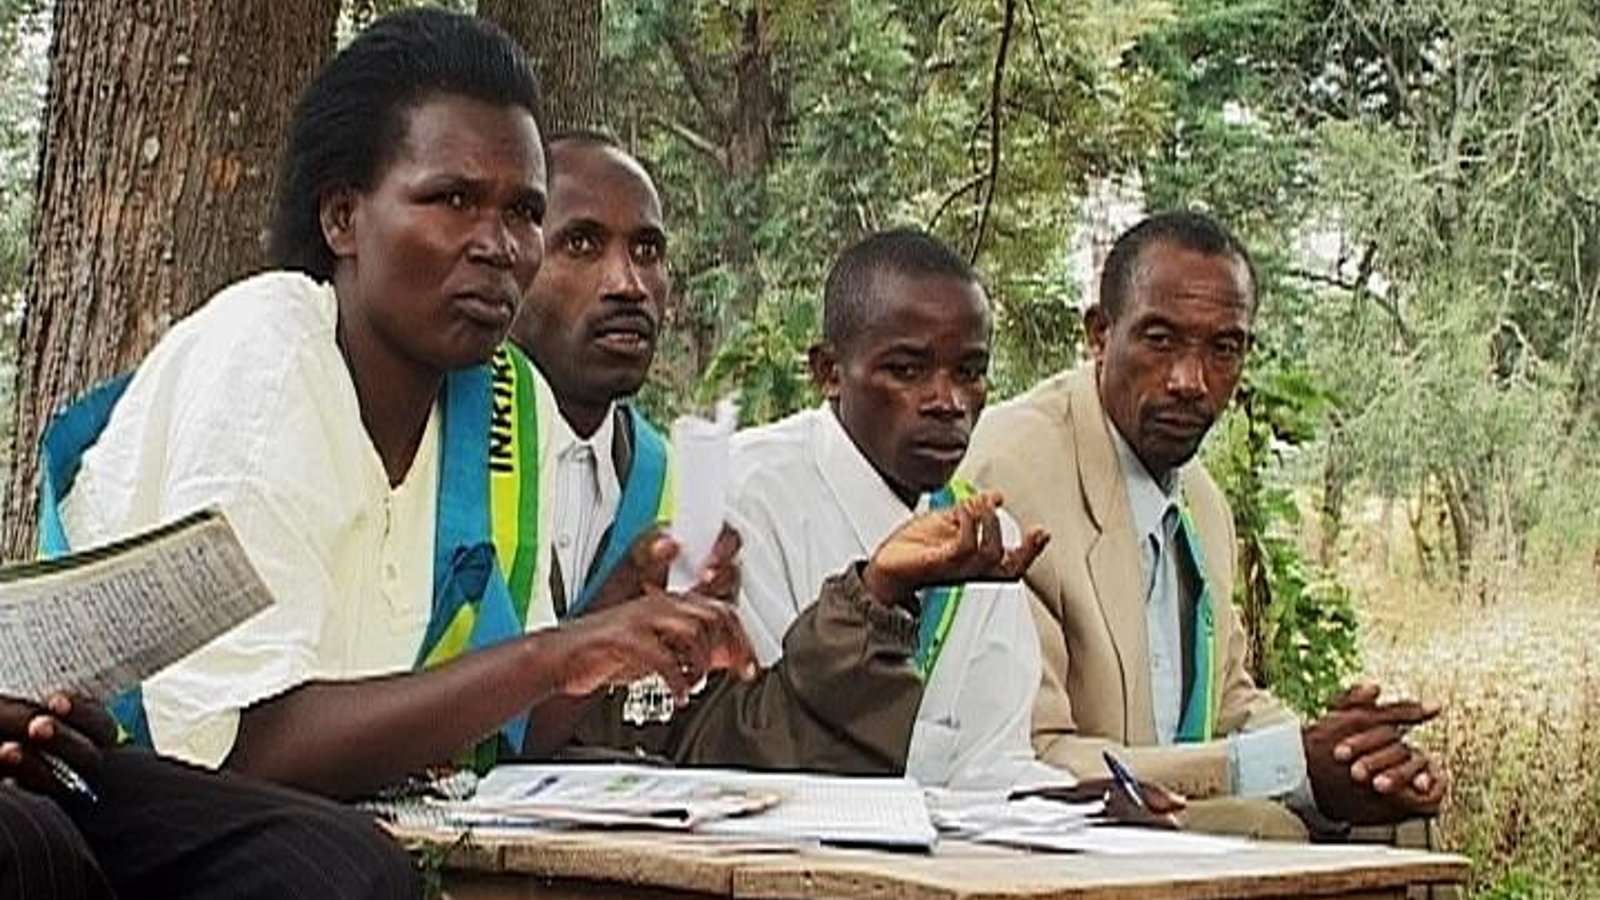 The Notebooks of Memory - Accounts and Confessions from the 1994 Tutsi Genocide